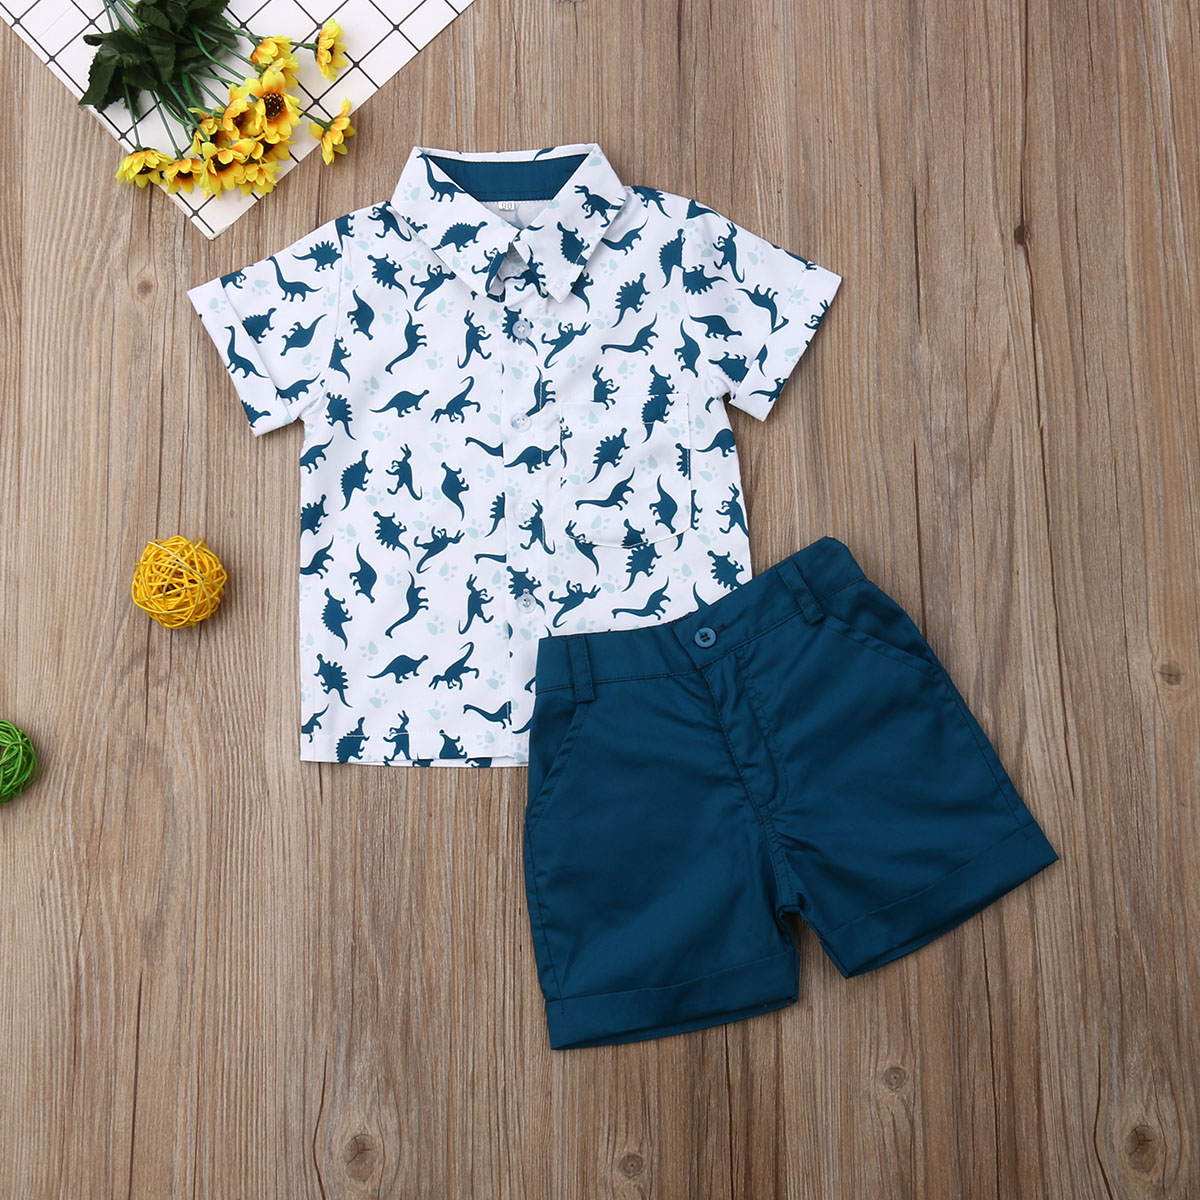 Emmababy Summer Toddler Baby Boy Clothes Dinosaur Print Shirt Tops Short Pants 2Pcs Outfits Casual Clothes Summer